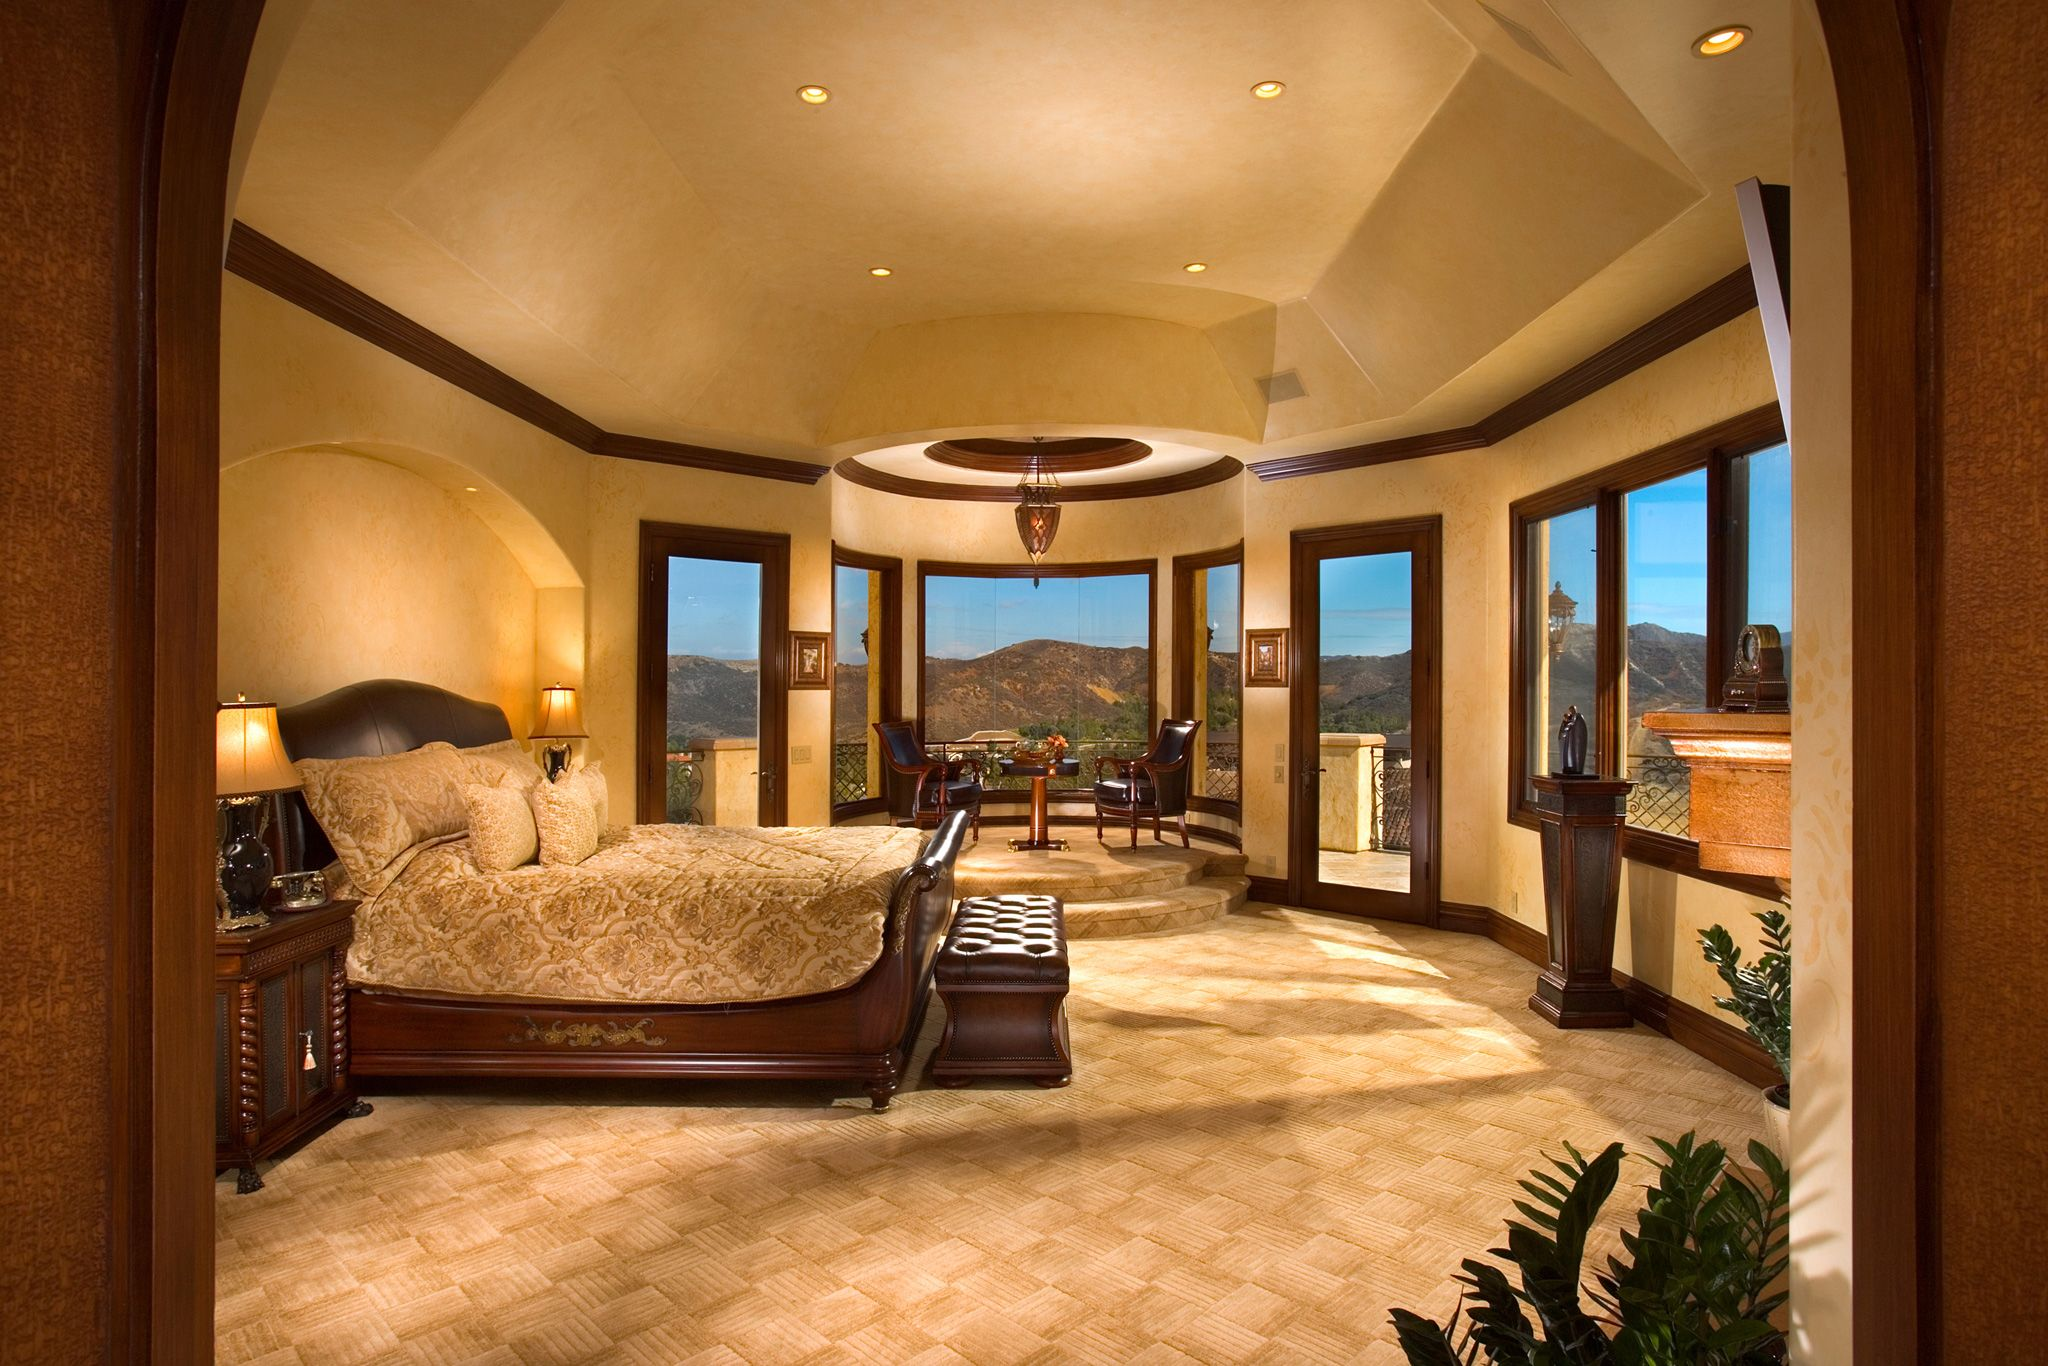 21 incredible master bedrooms design ideas luxury master for Beautiful bedroom design hd images